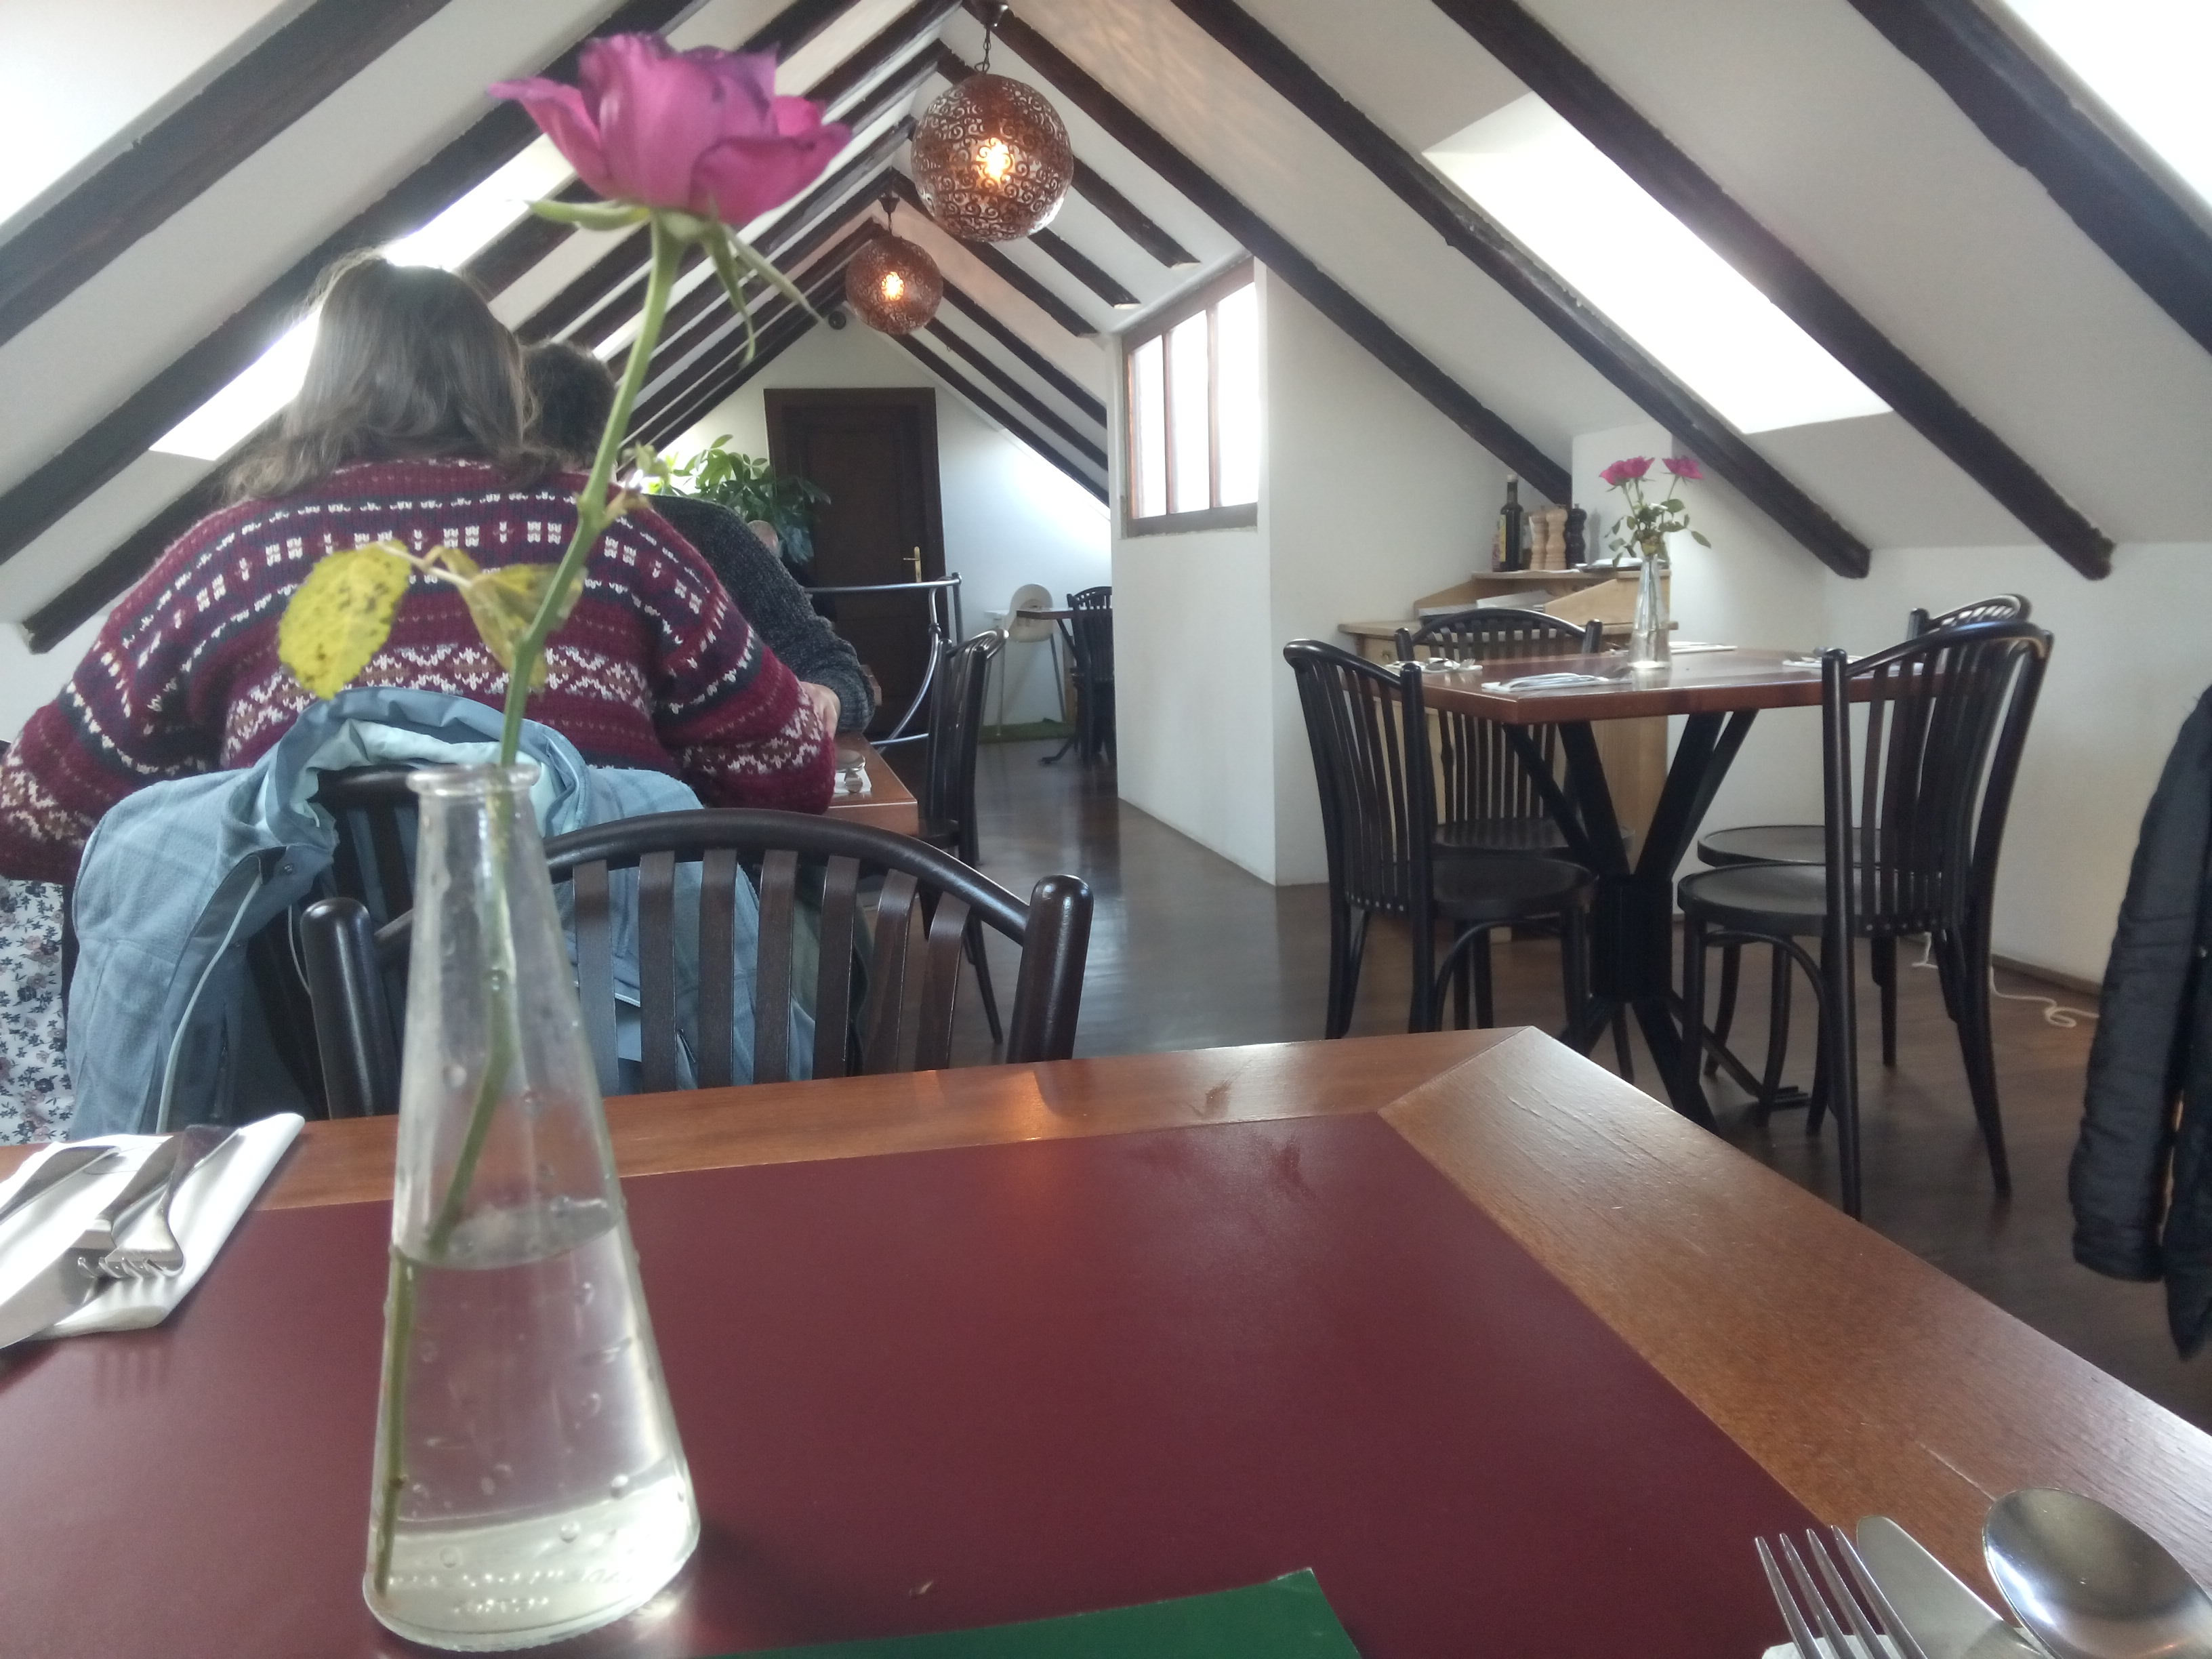 A restaurant interior with red tables and a pink rose in a vase in the foreground. The background is white walls with dark wooden beams angled into a triangular roof